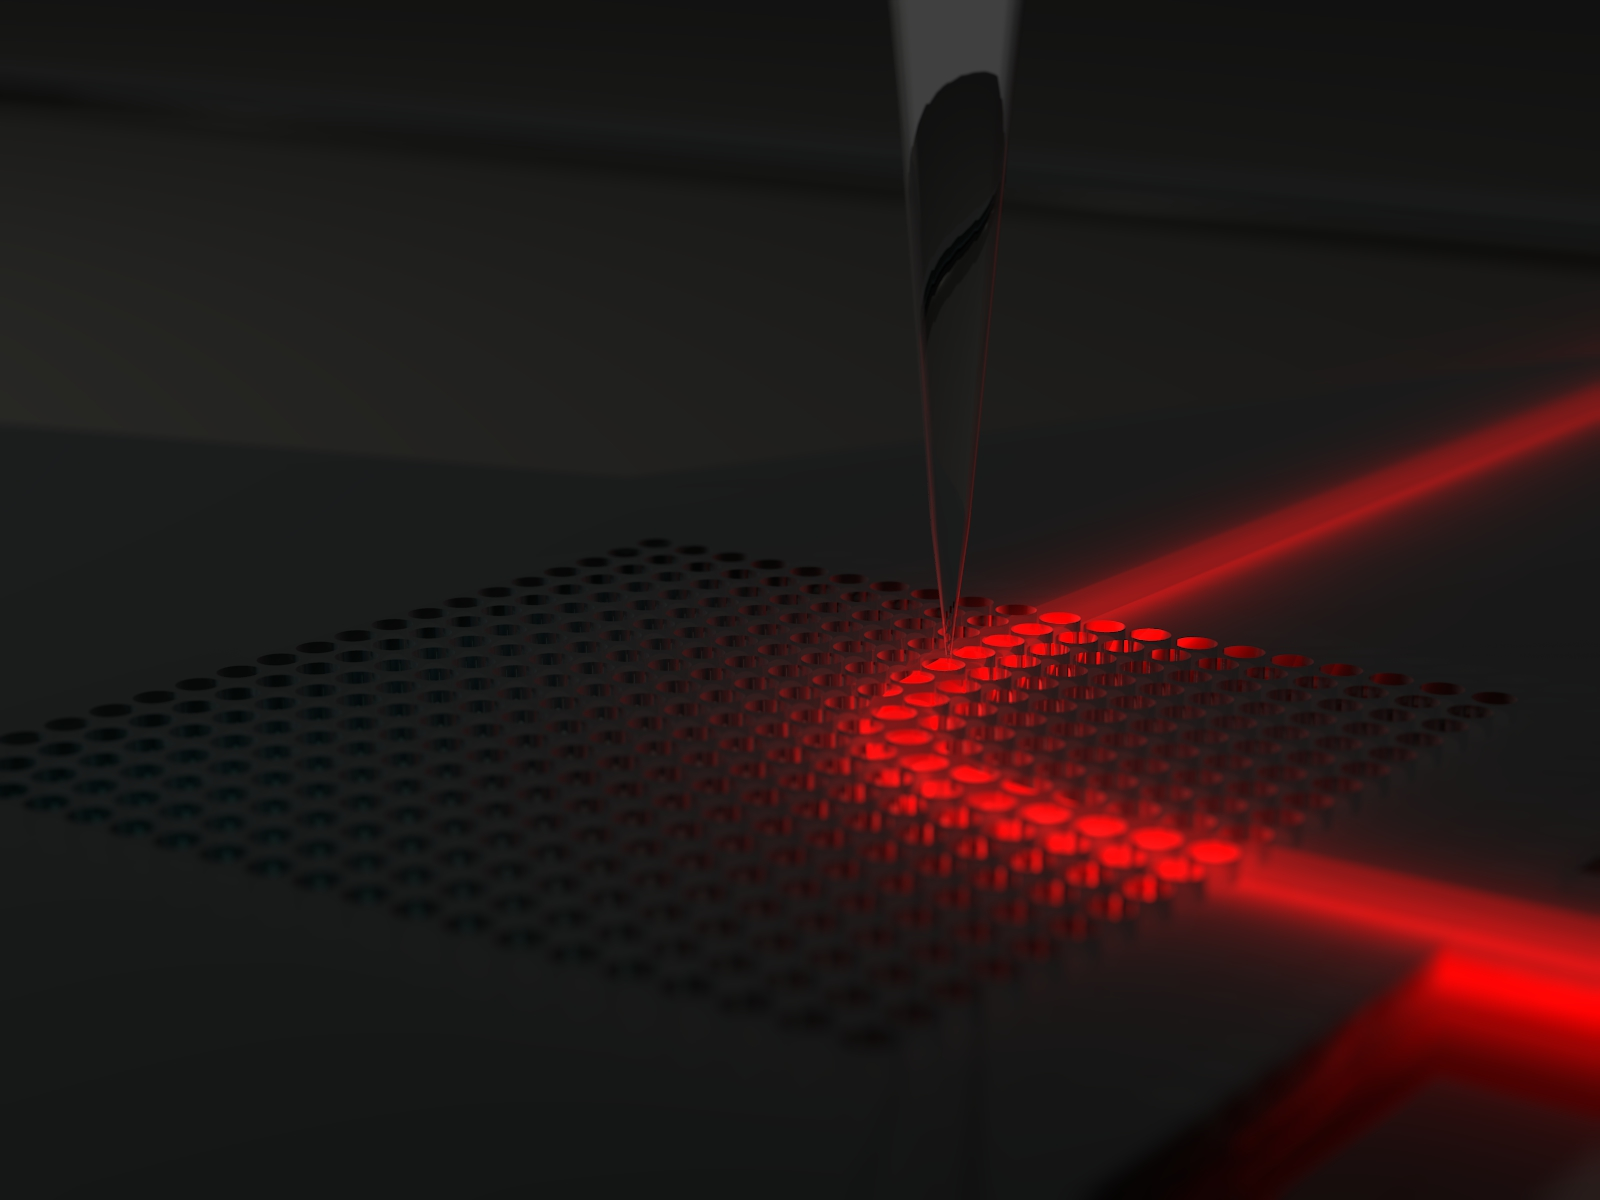 Light bending in a all dielectric metamaterial